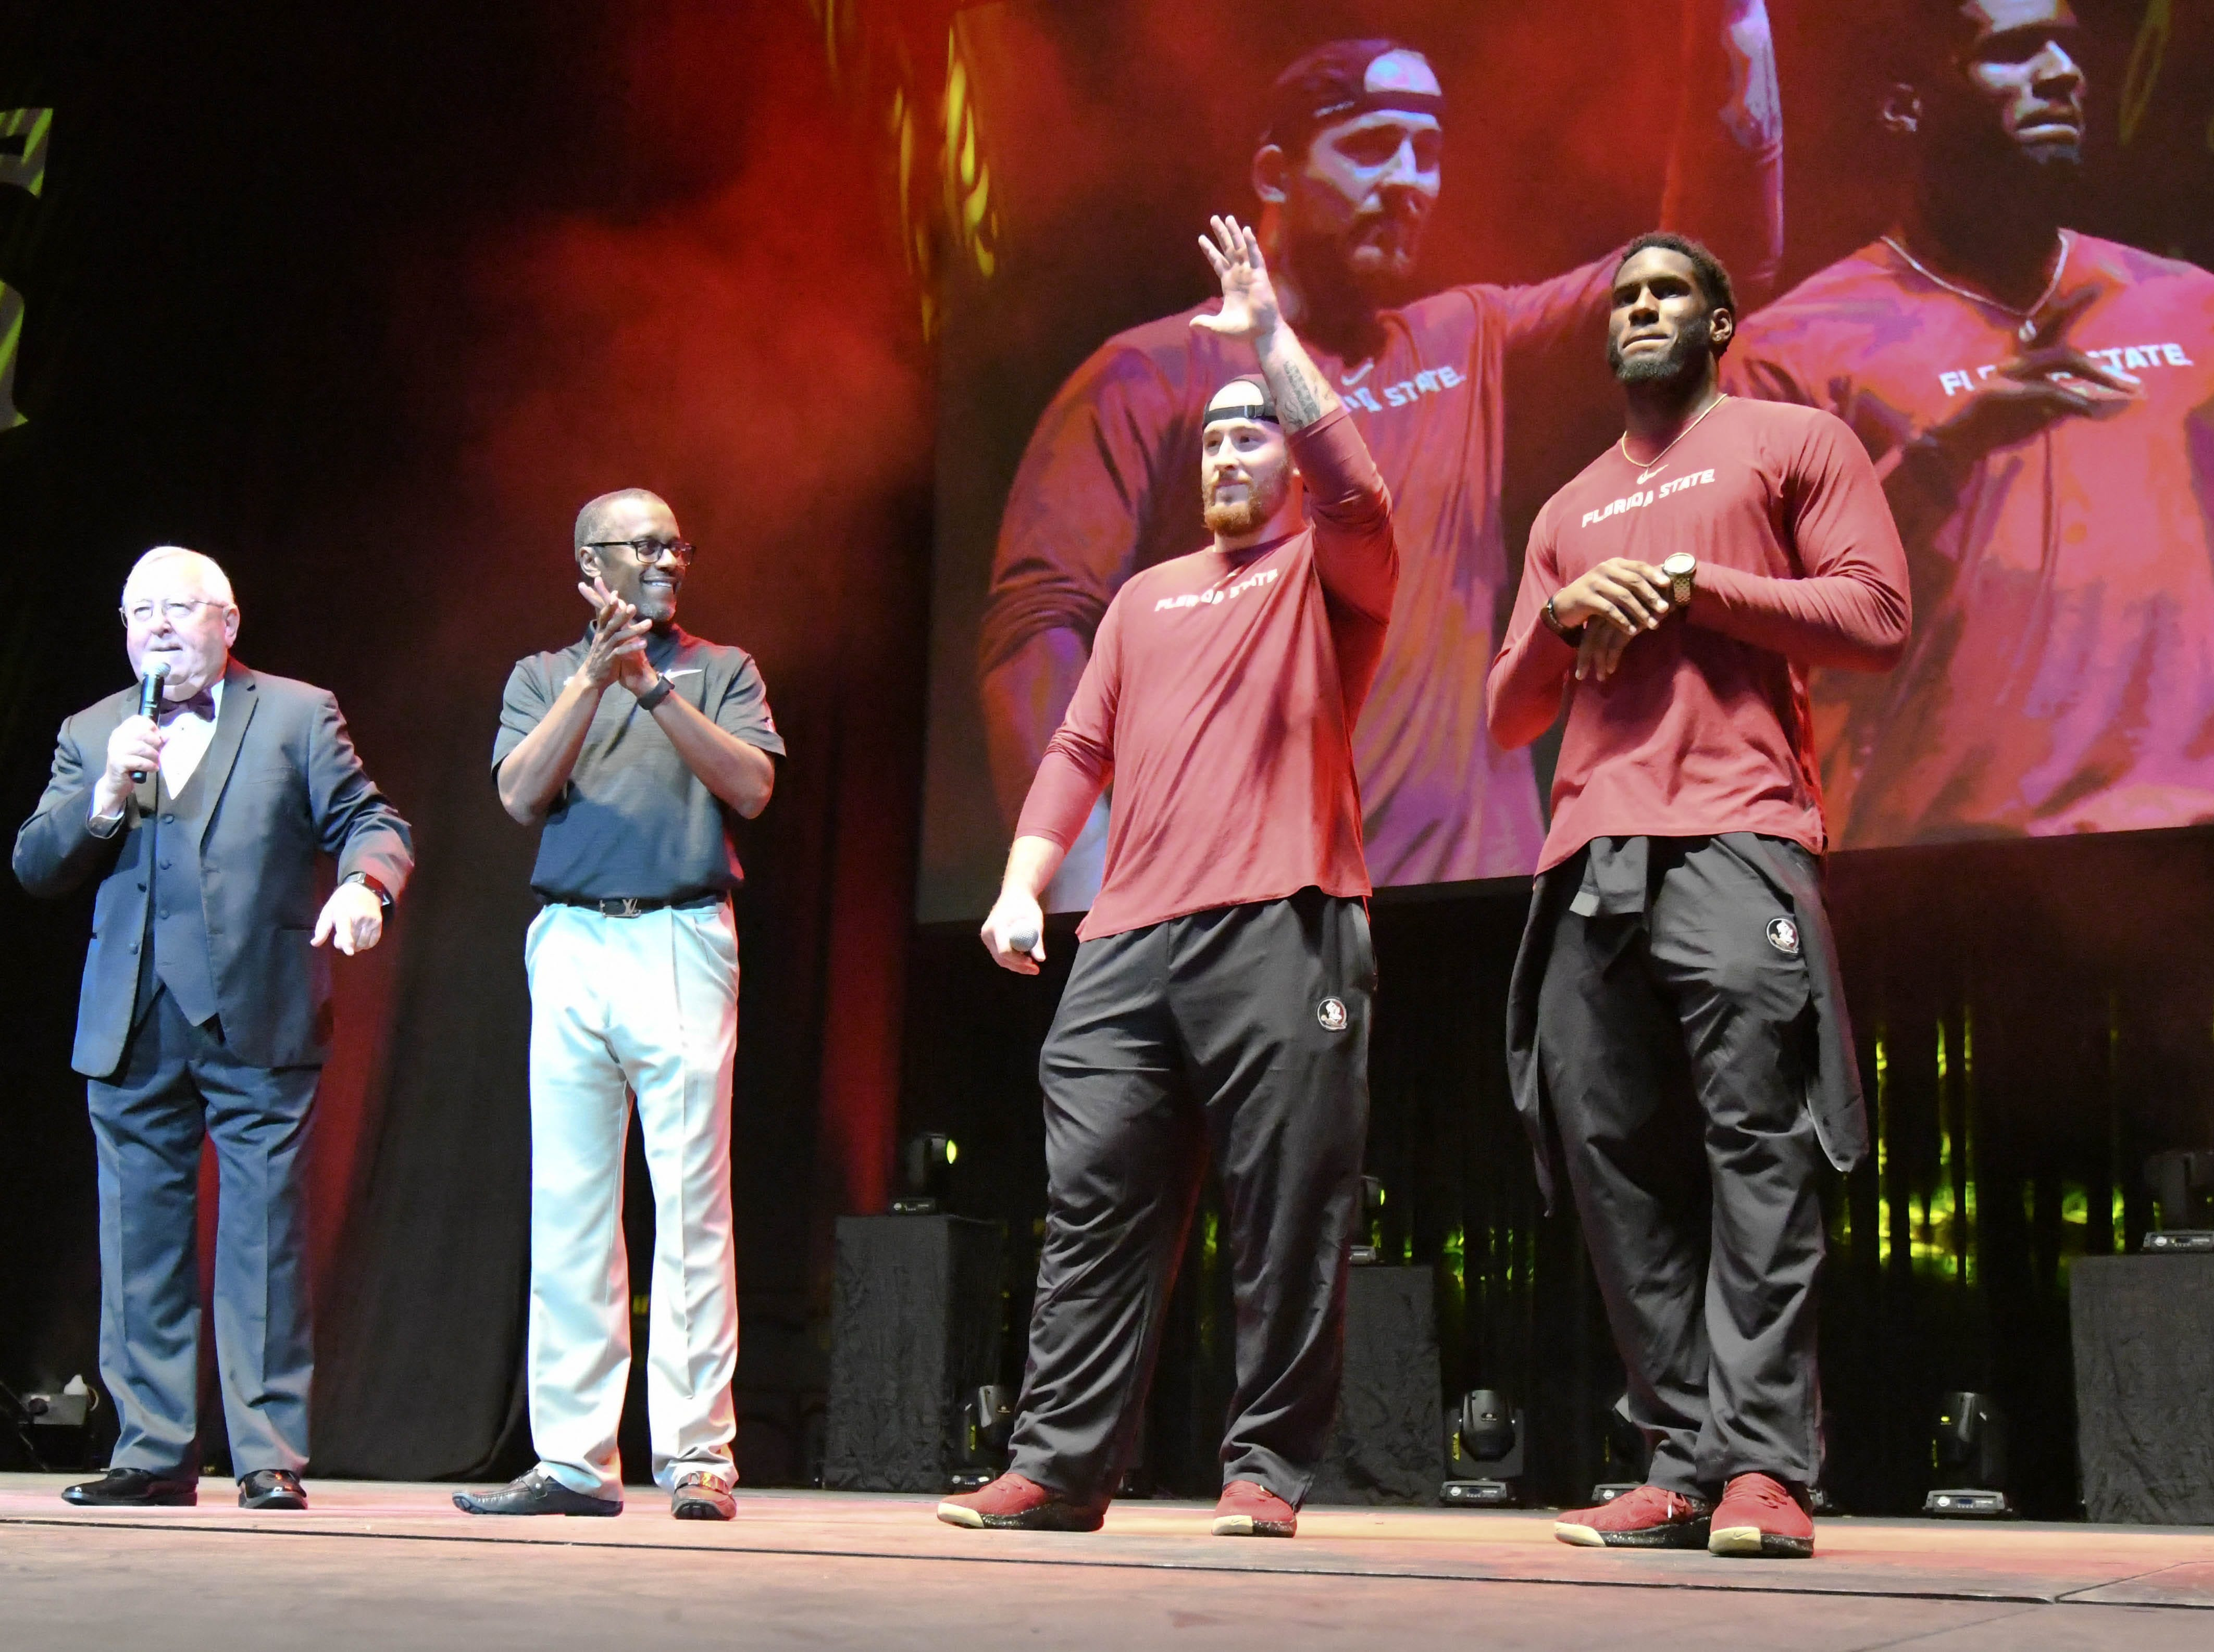 FSU head coach Willie Taggart, second from the left, and FSU football players Alec Eberle, second from the right, and Brian Burns, right, at PowWow in the Tucker Center on October 19, 2018.